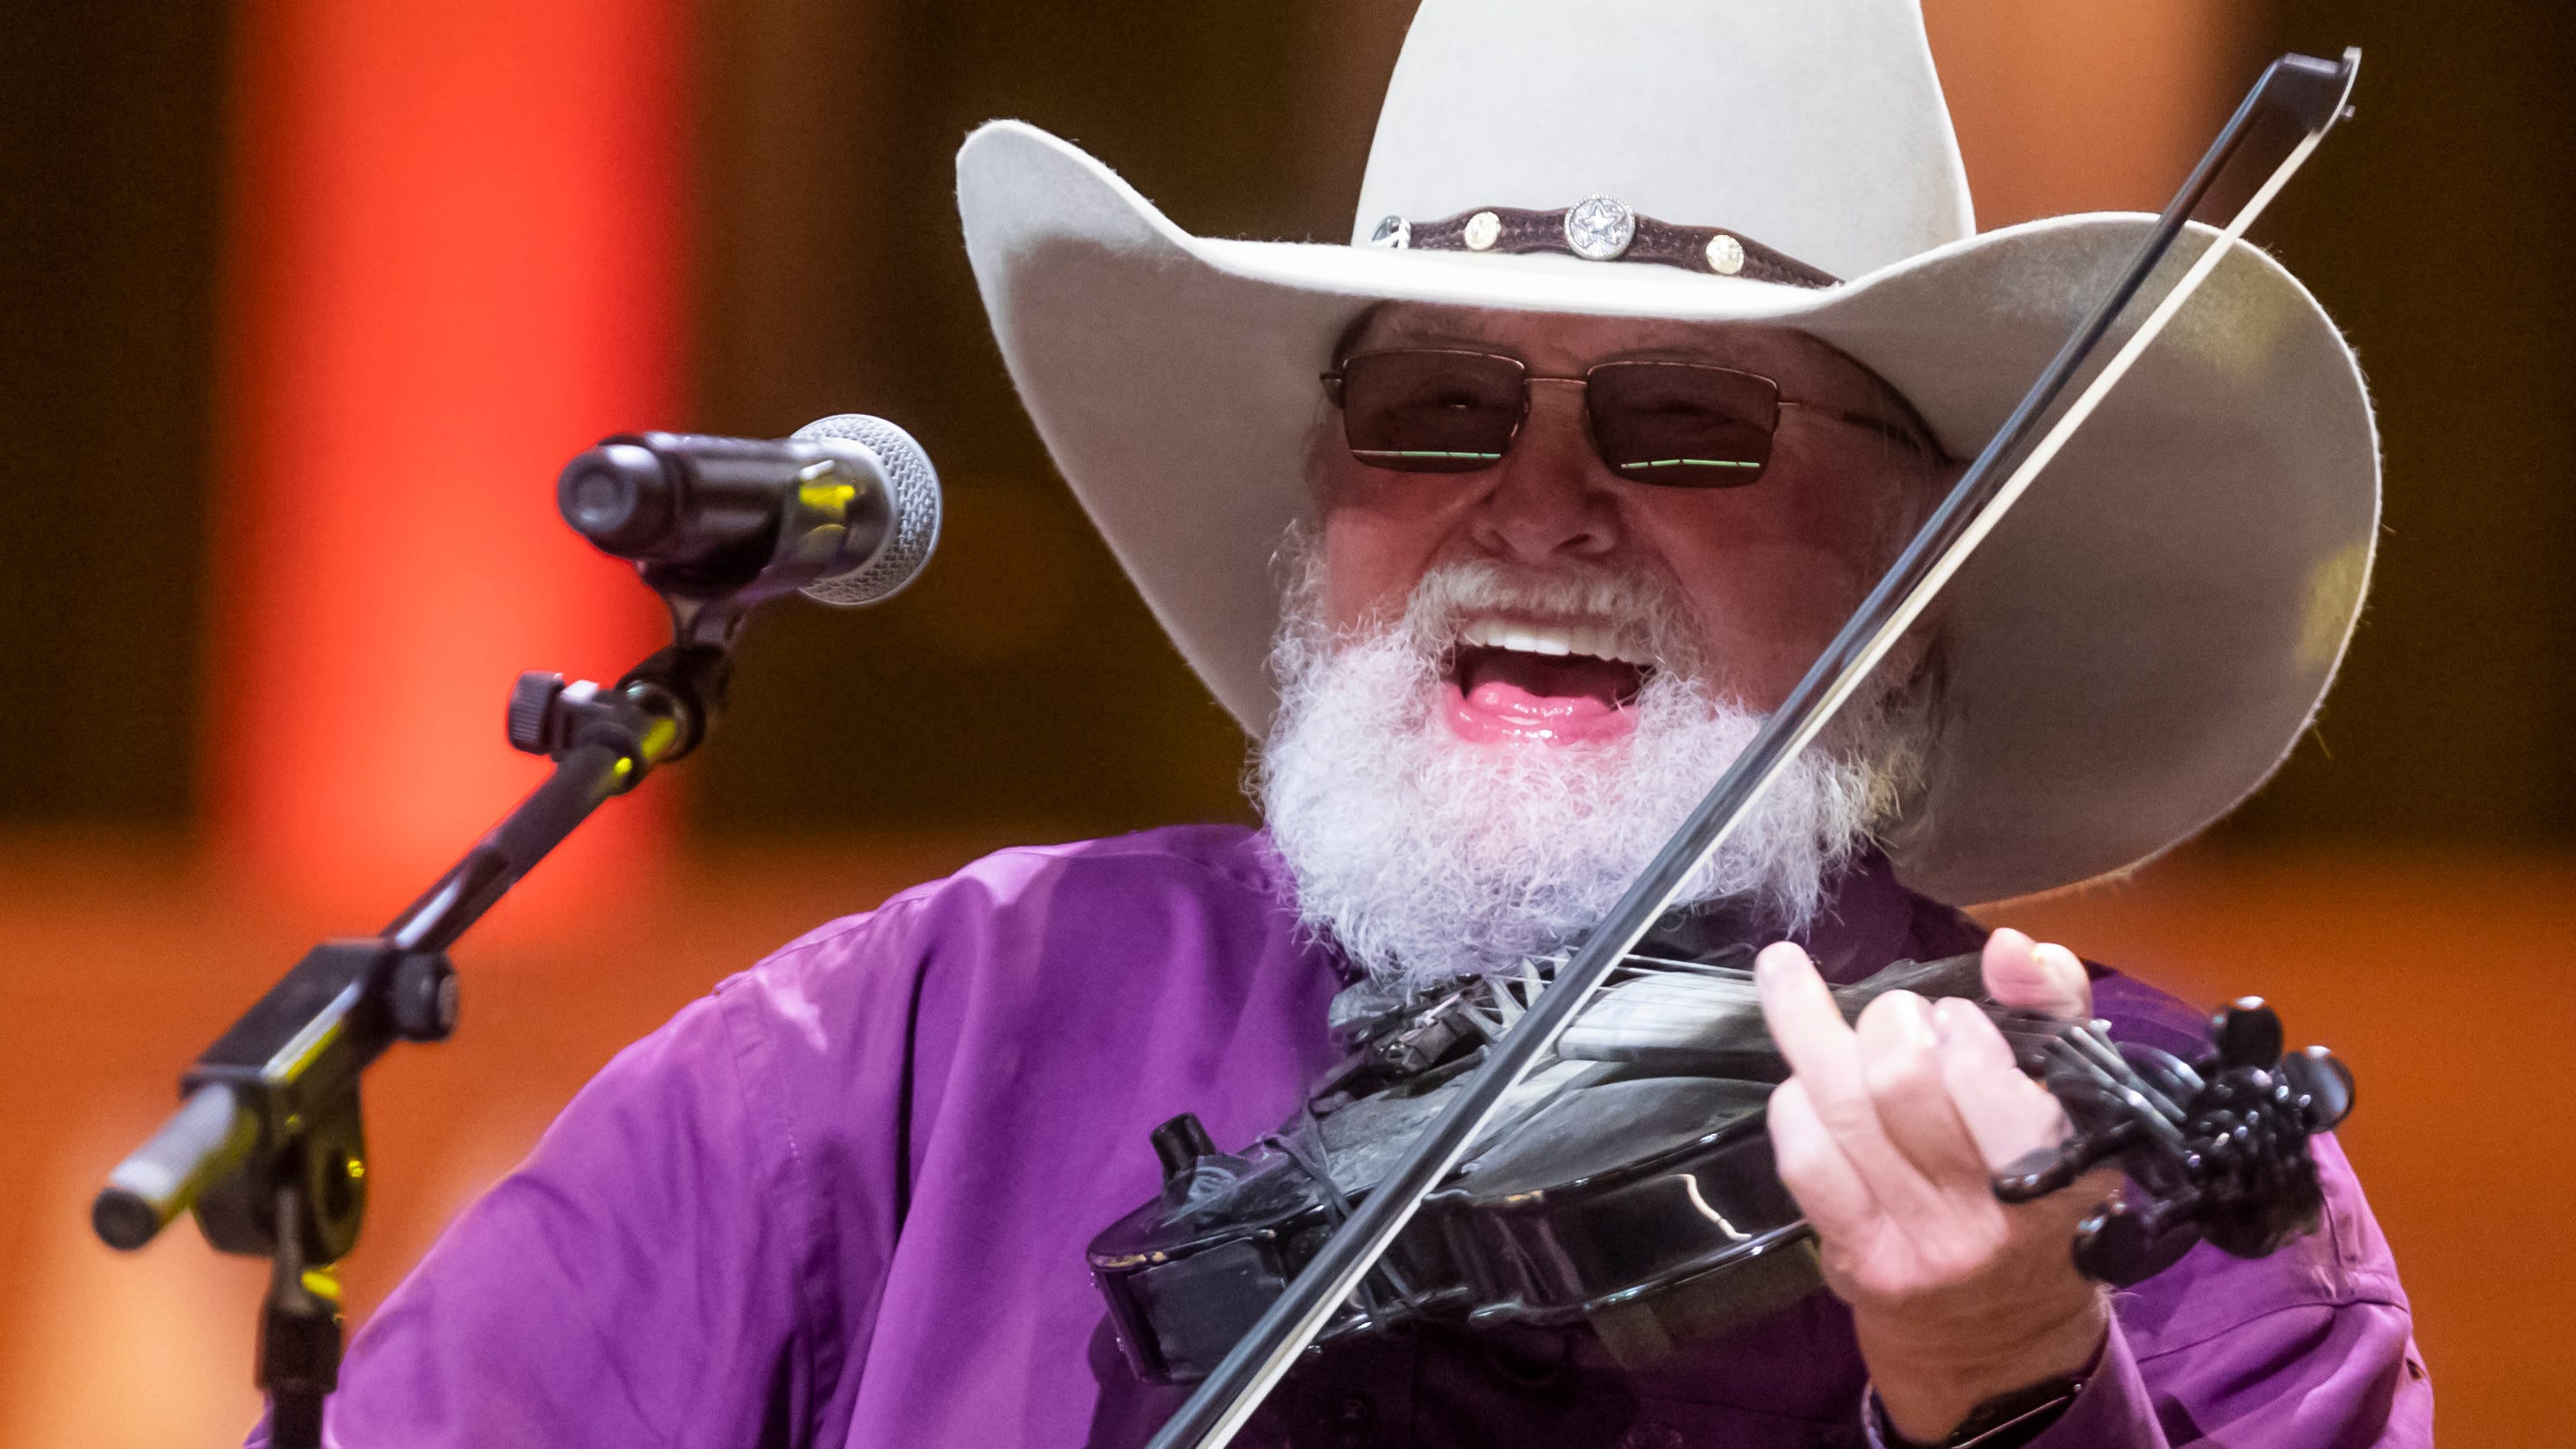 Charlie Daniels, 'Devil Went Down to Georgia' singer, famed fiddler and outspoken star, dies at 83